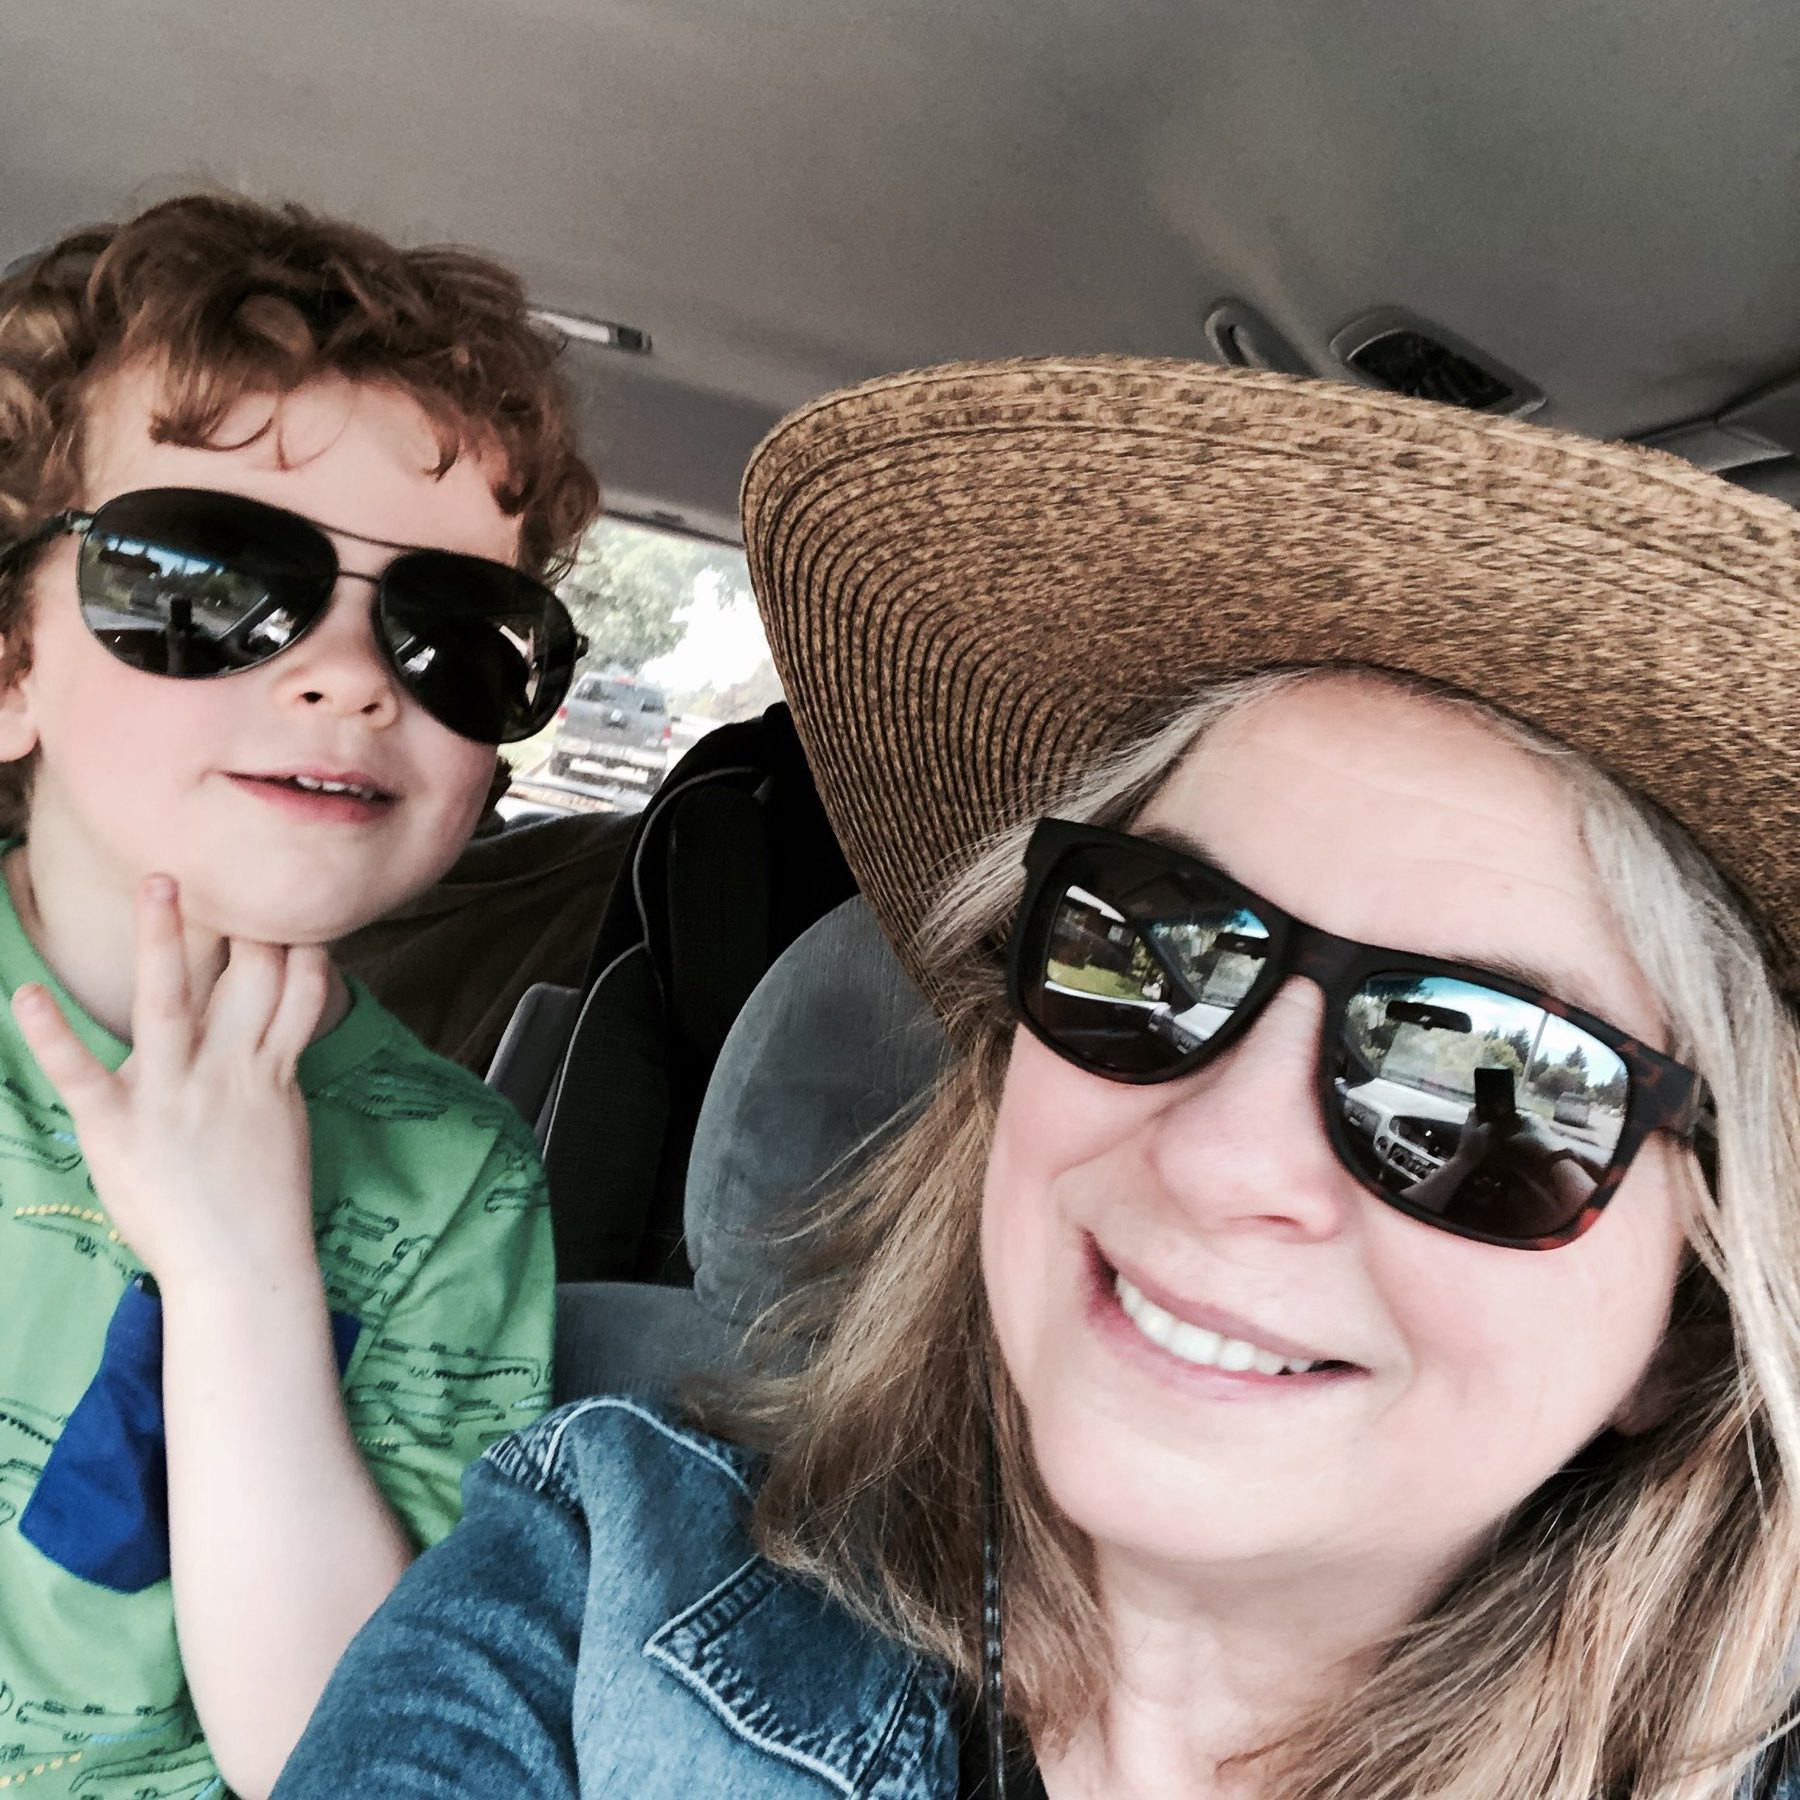 Nephew and aunt in sunglasses.